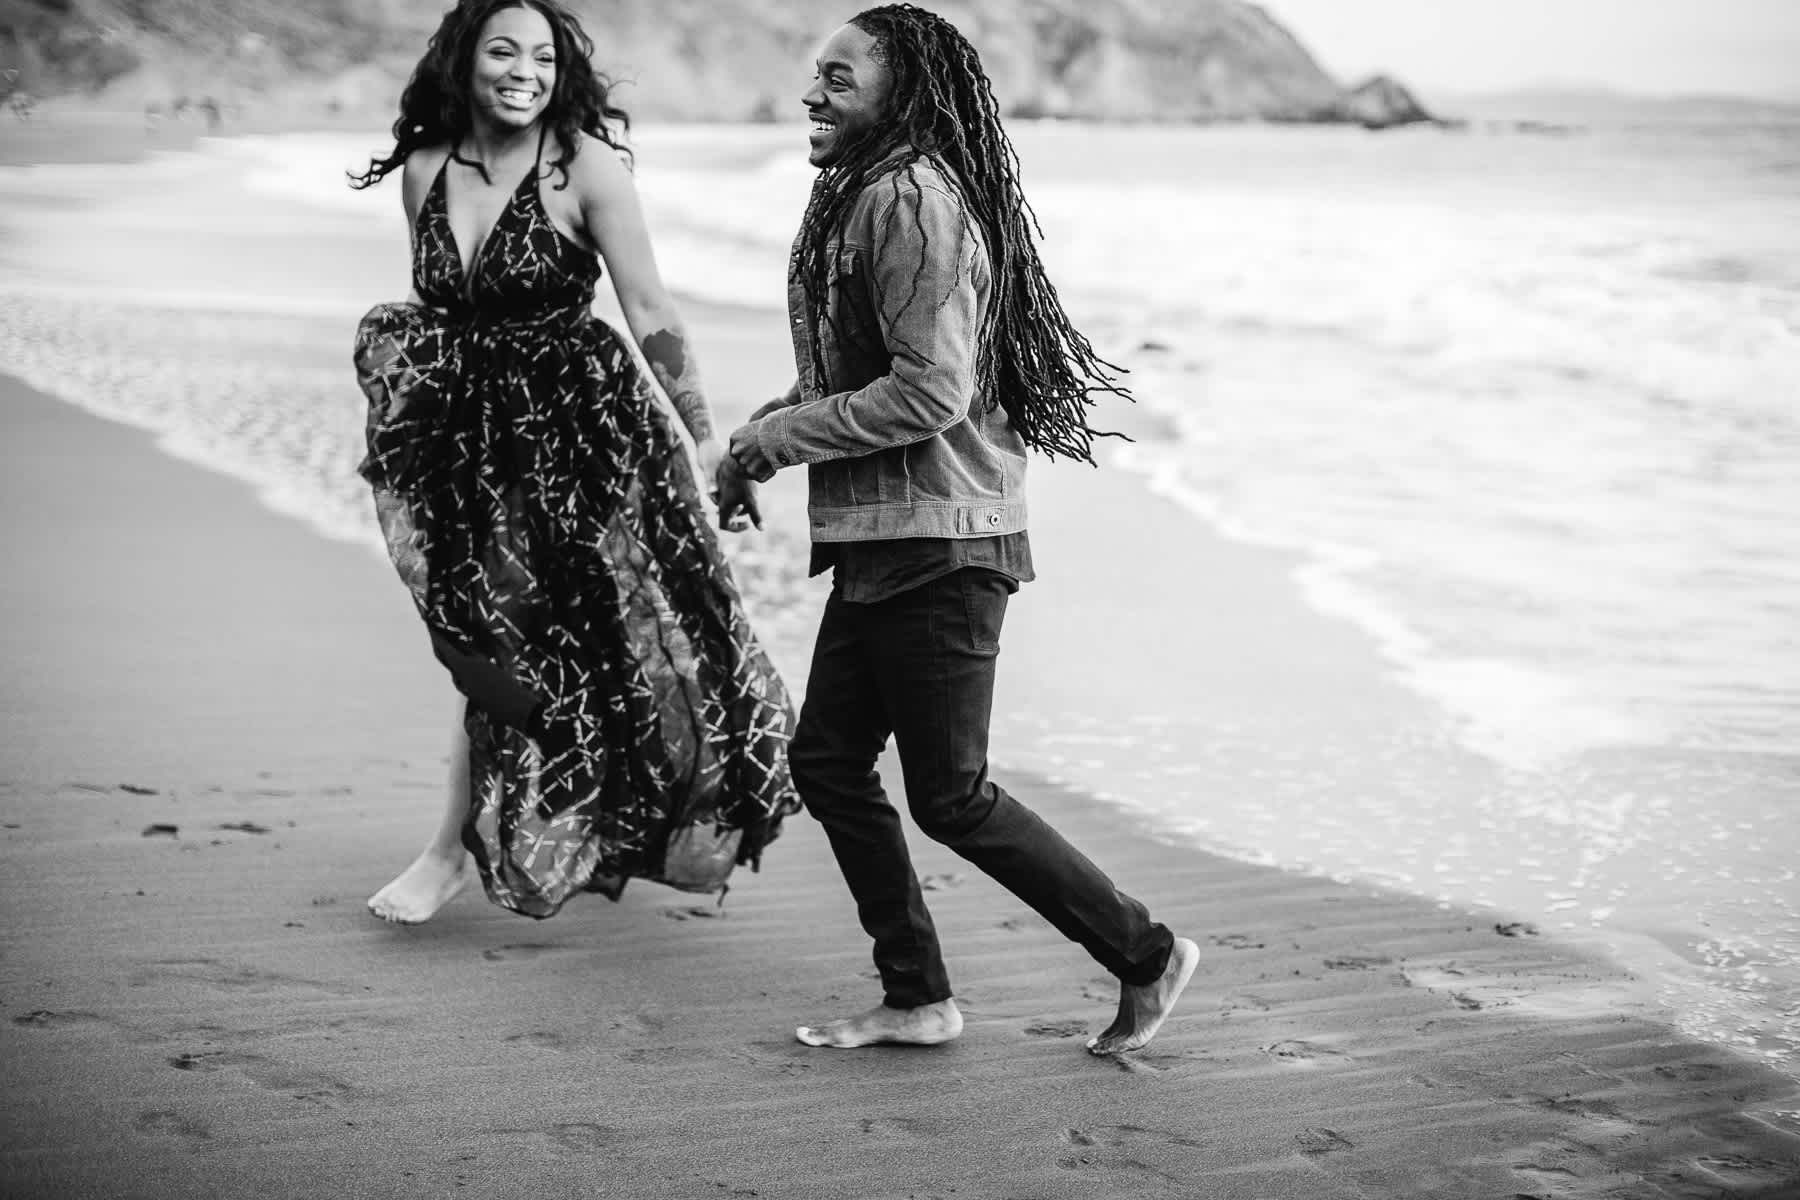 muir-beach-ca-spring-lifestyle-engagement-session-31